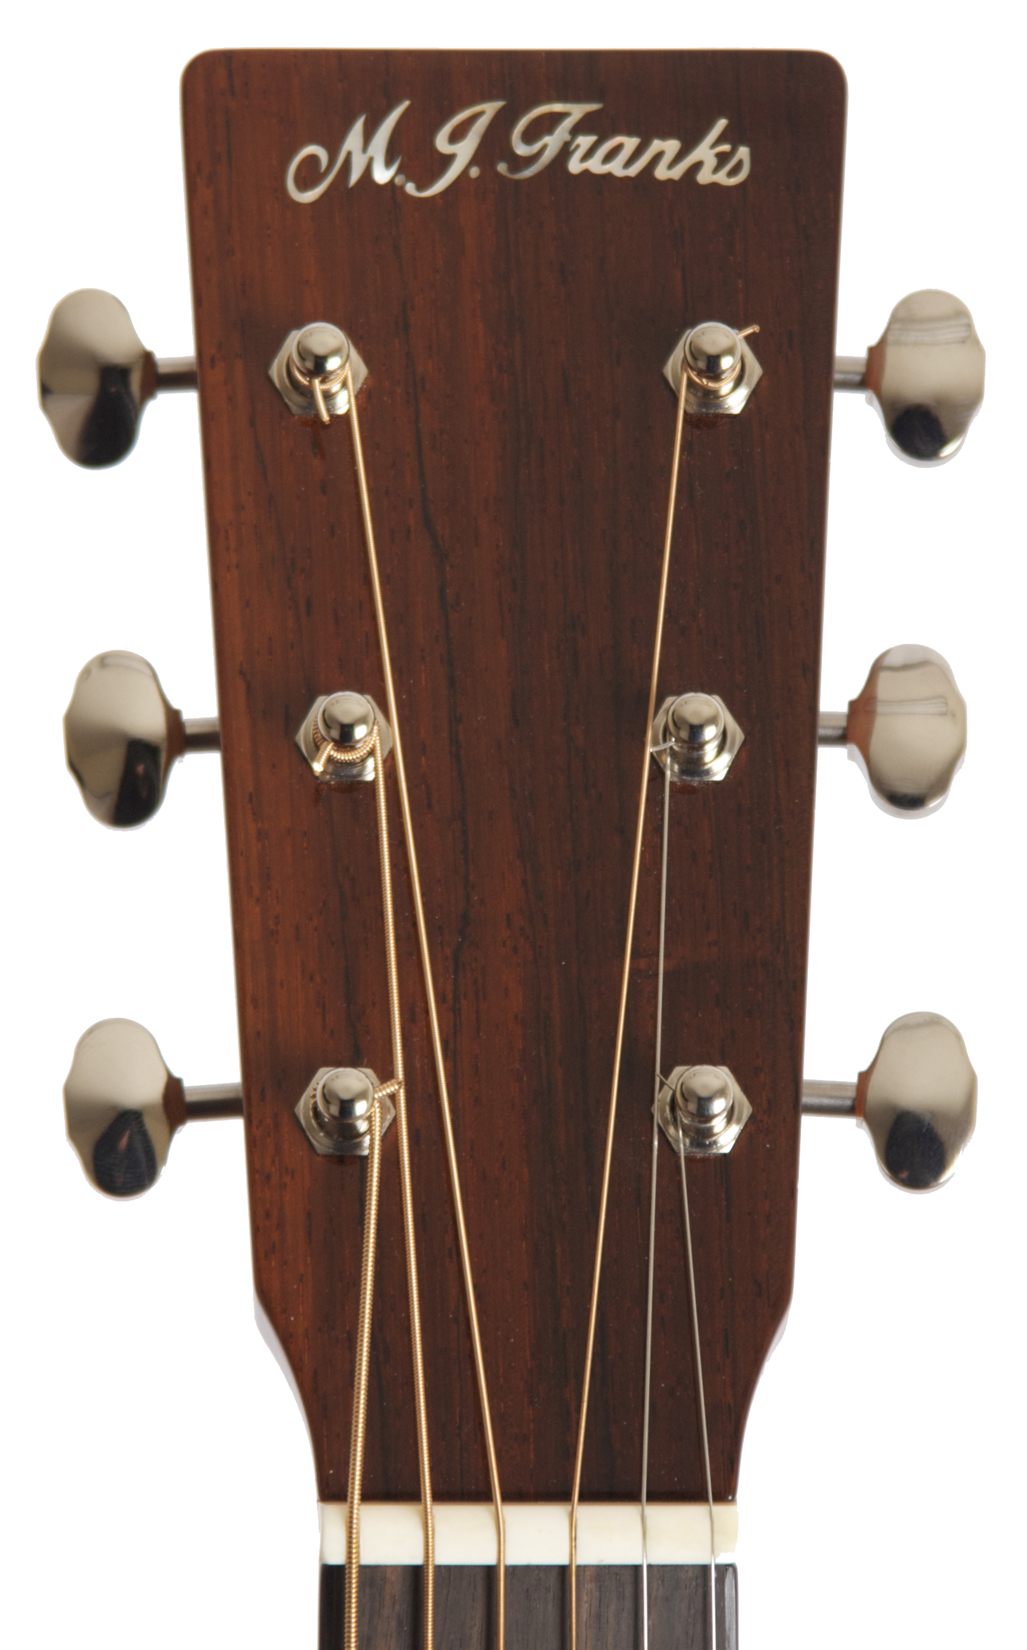 Franks-D-mah-headstock.jpg